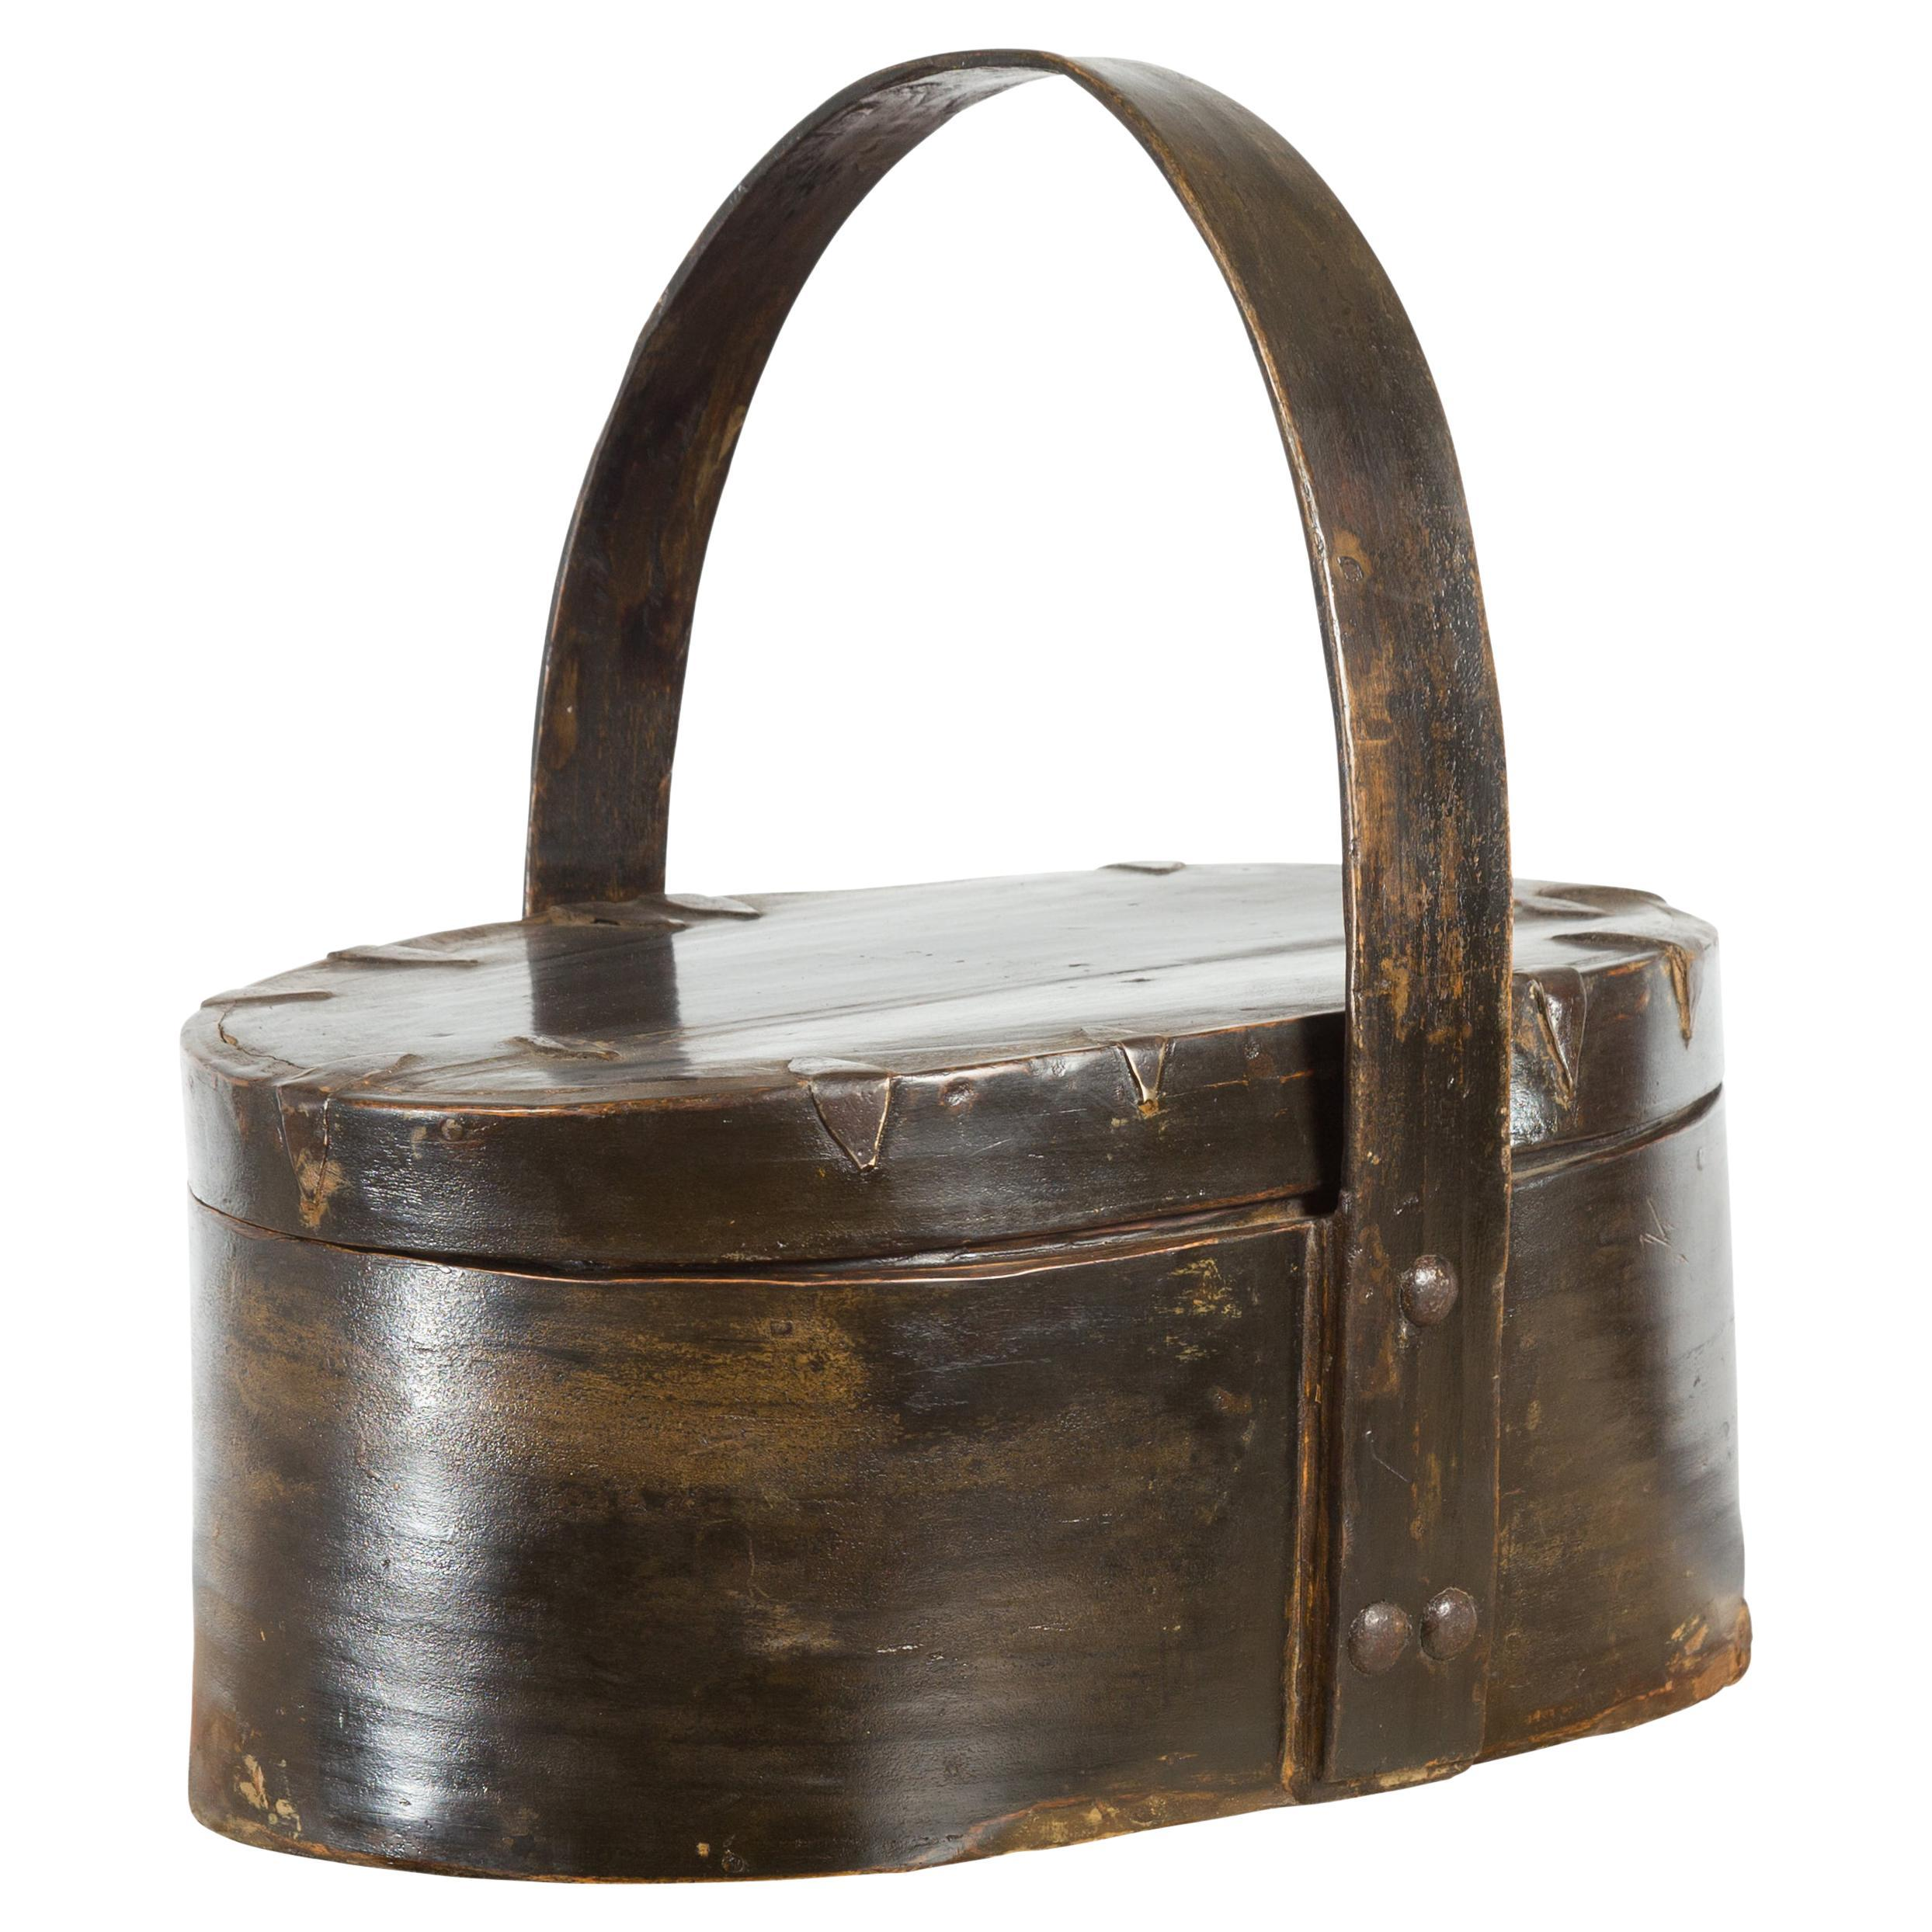 Chinese Early 20th Century Oval Carrying Basket with Large Bamboo Handle